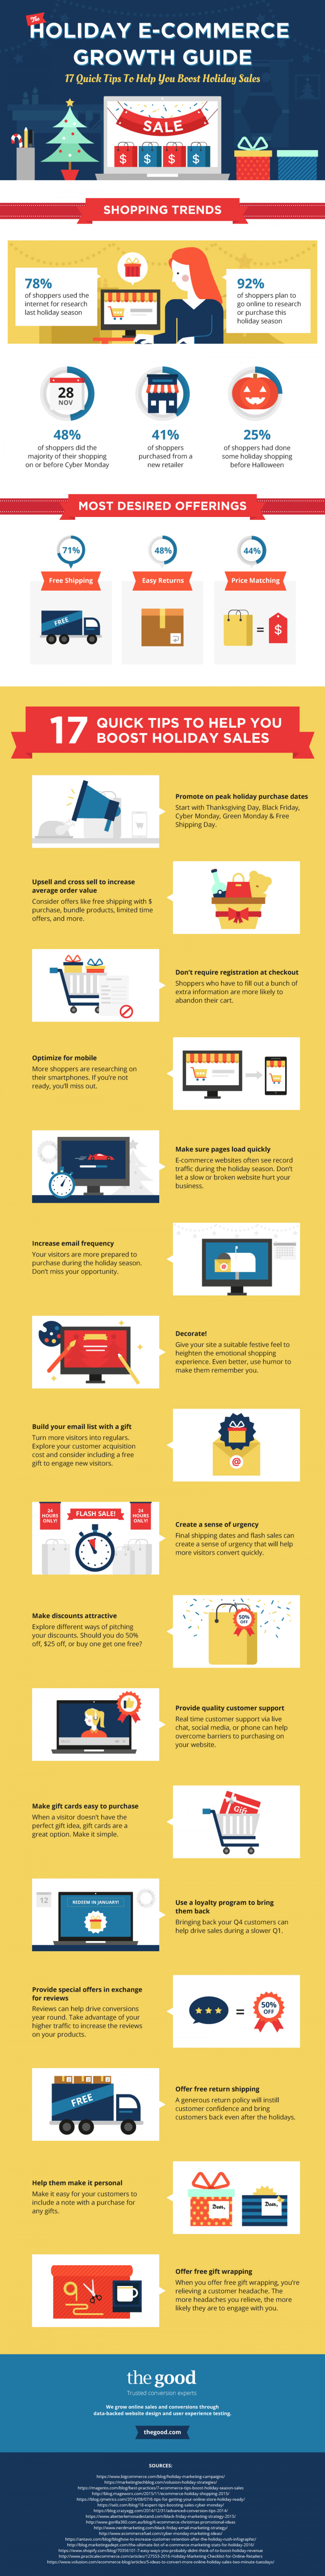 The Holiday E-Commerce Growth Guide  Infographic